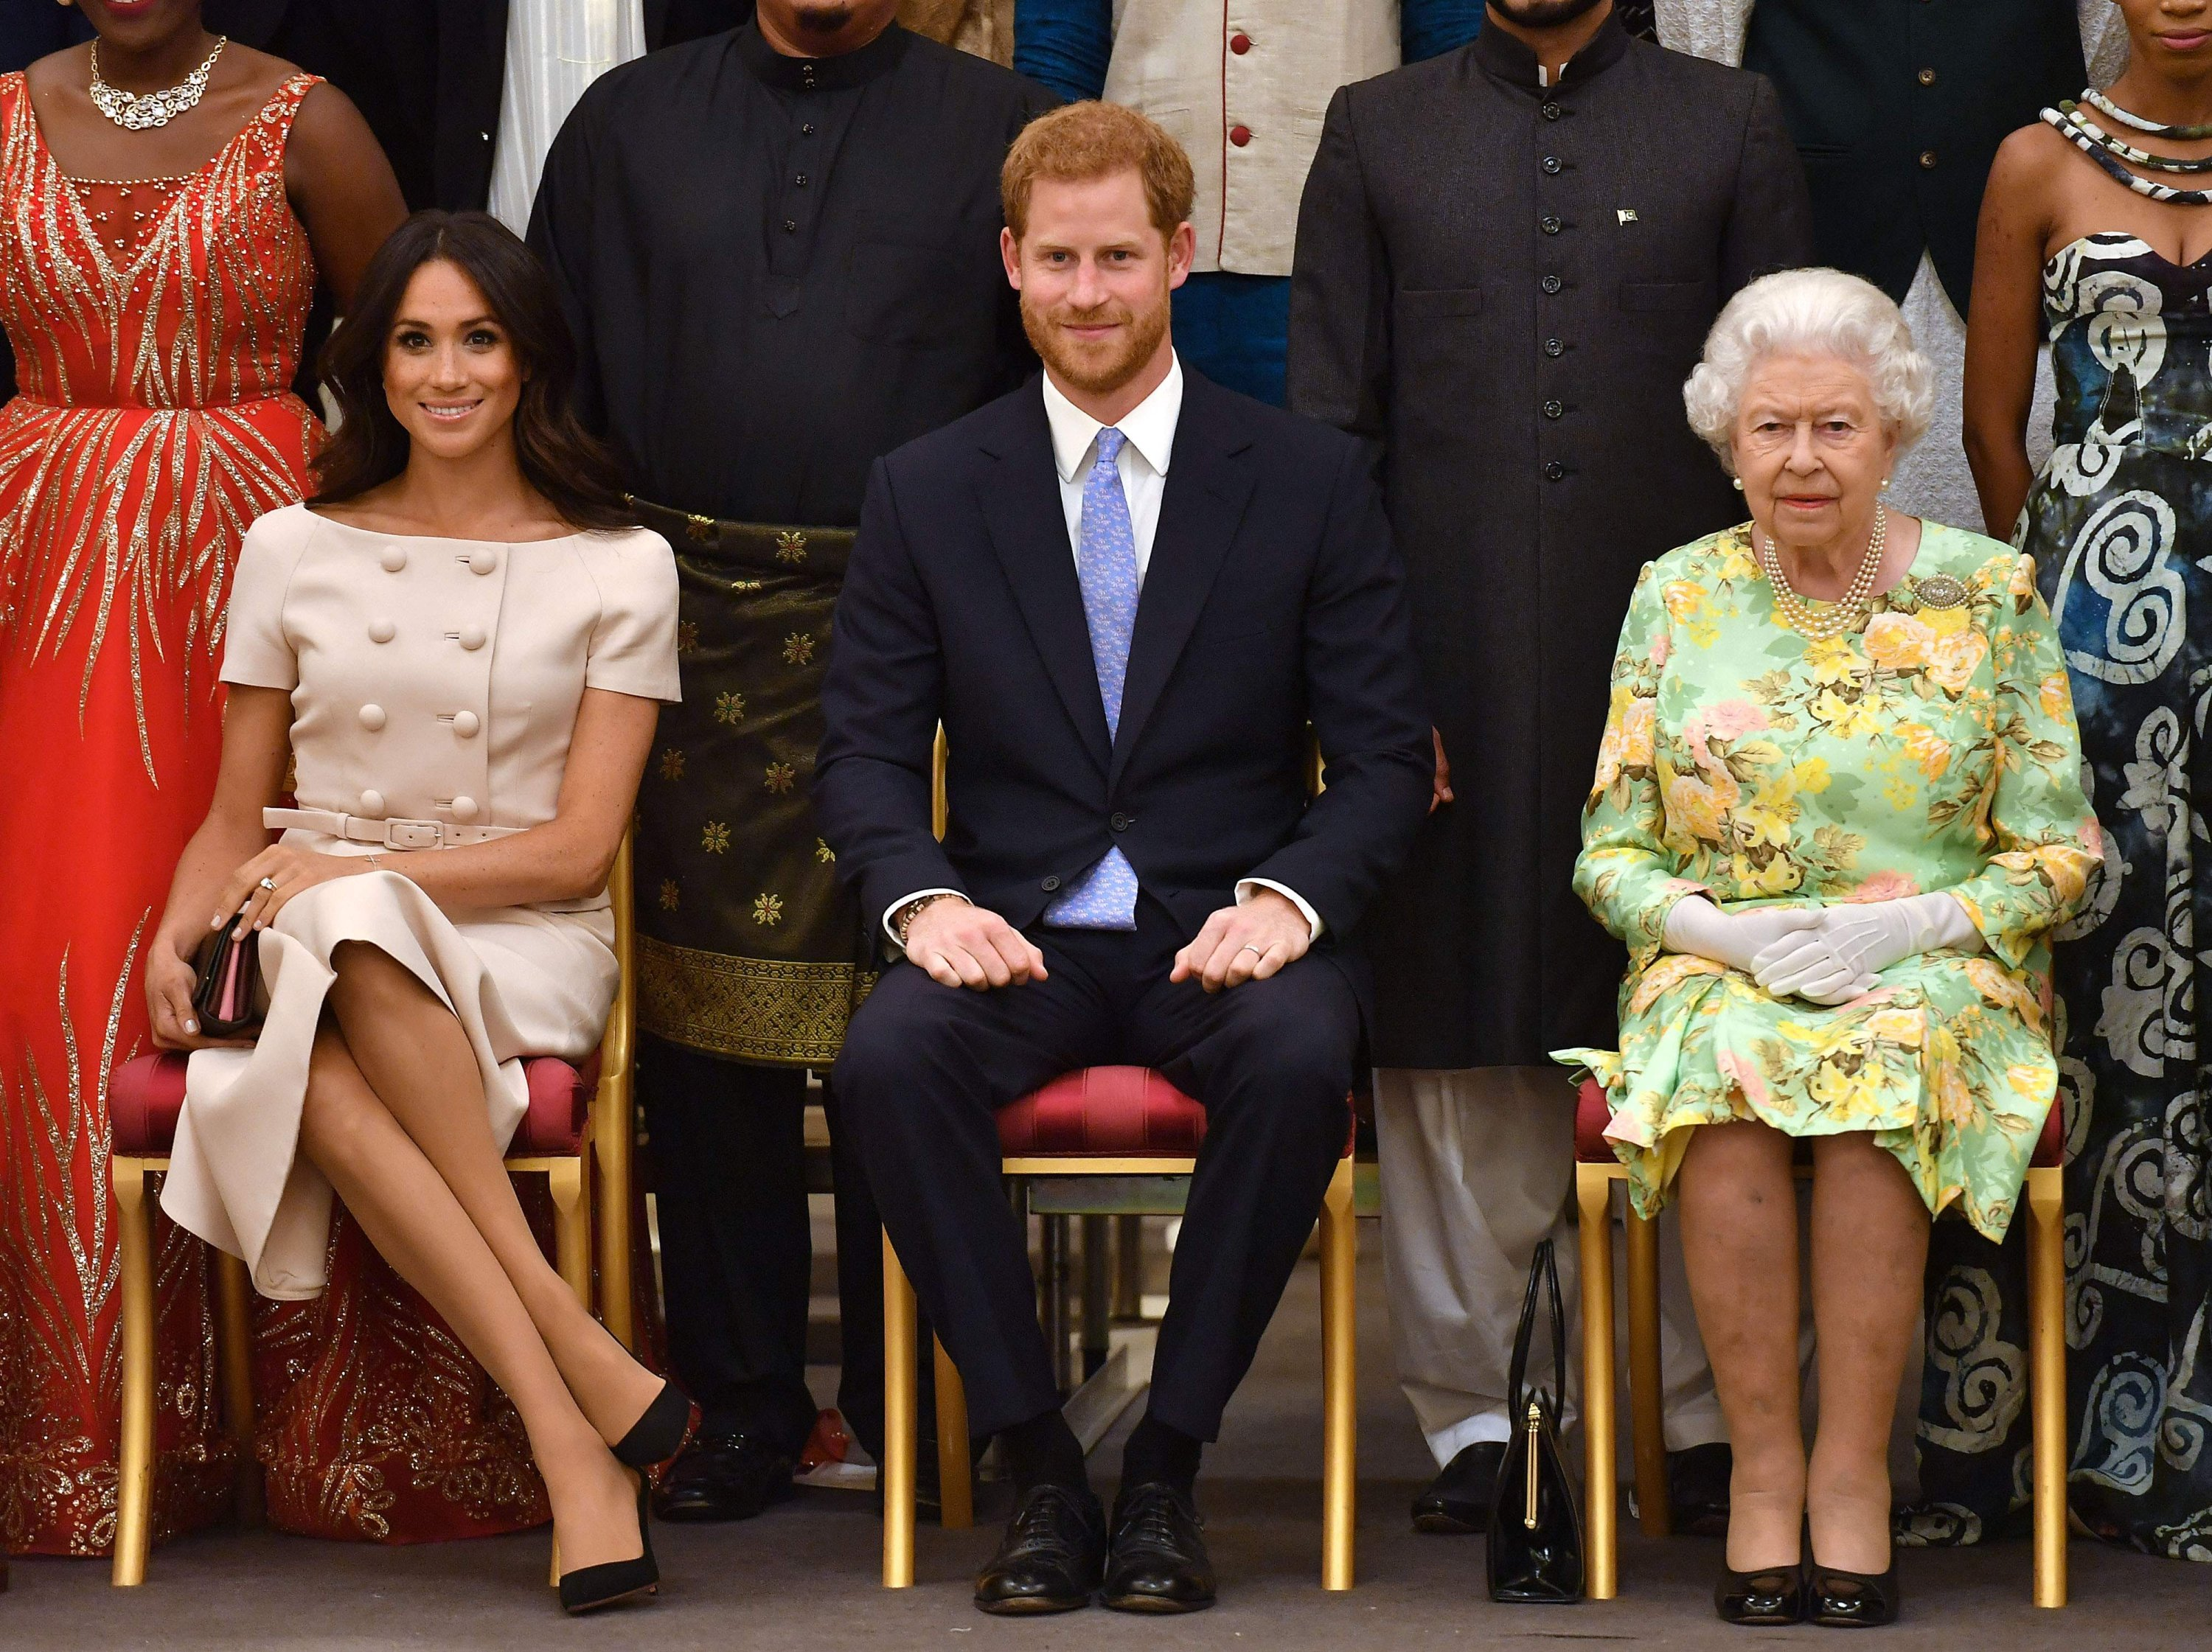 Meghan, Duchess of Sussex (Left), Britain's Prince Harry, Duke of Sussex (Center) and Britain's Queen Elizabeth II pose for a picture during the Queen's Young Leaders Awards Ceremony at Buckingham Palace in London, U.K., June 26, 2018. (AFP Photo)